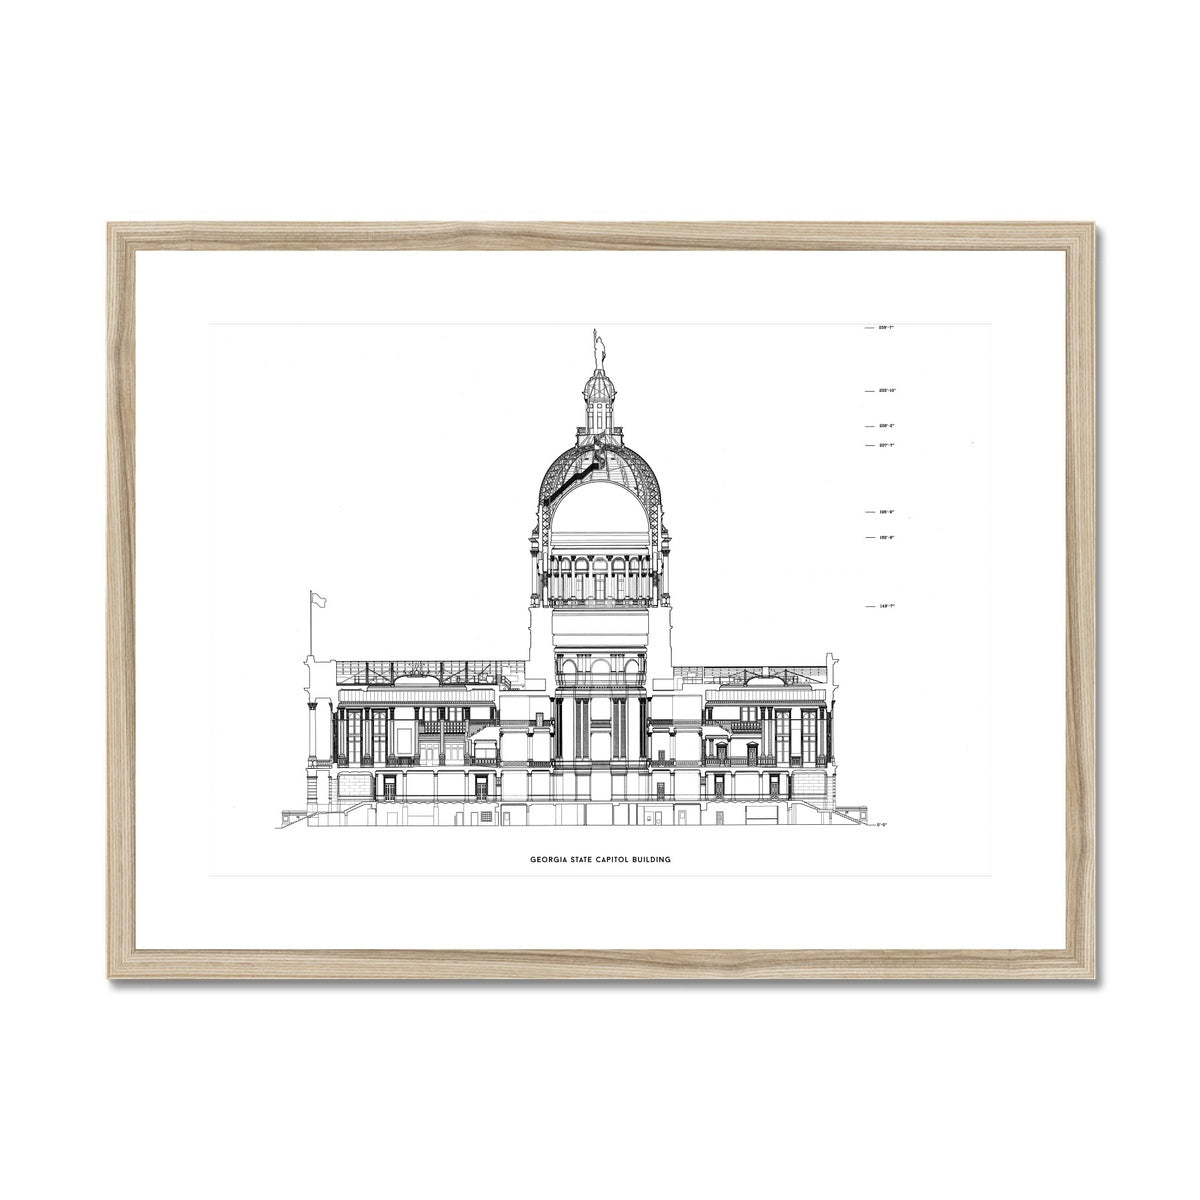 The Georgia State Capitol Building - North Elevation Cross Section - White -  Framed & Mounted Print